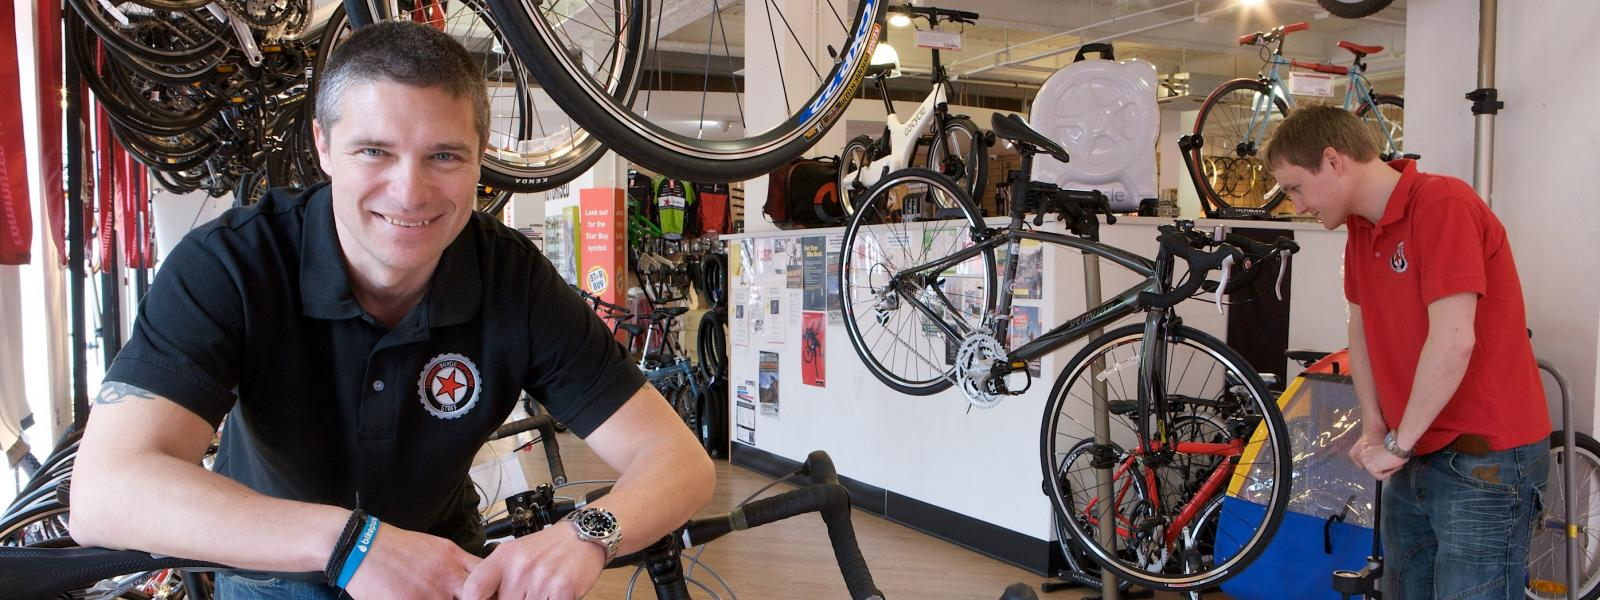 Member of Edinburgh Bicycle Co-op with bikes